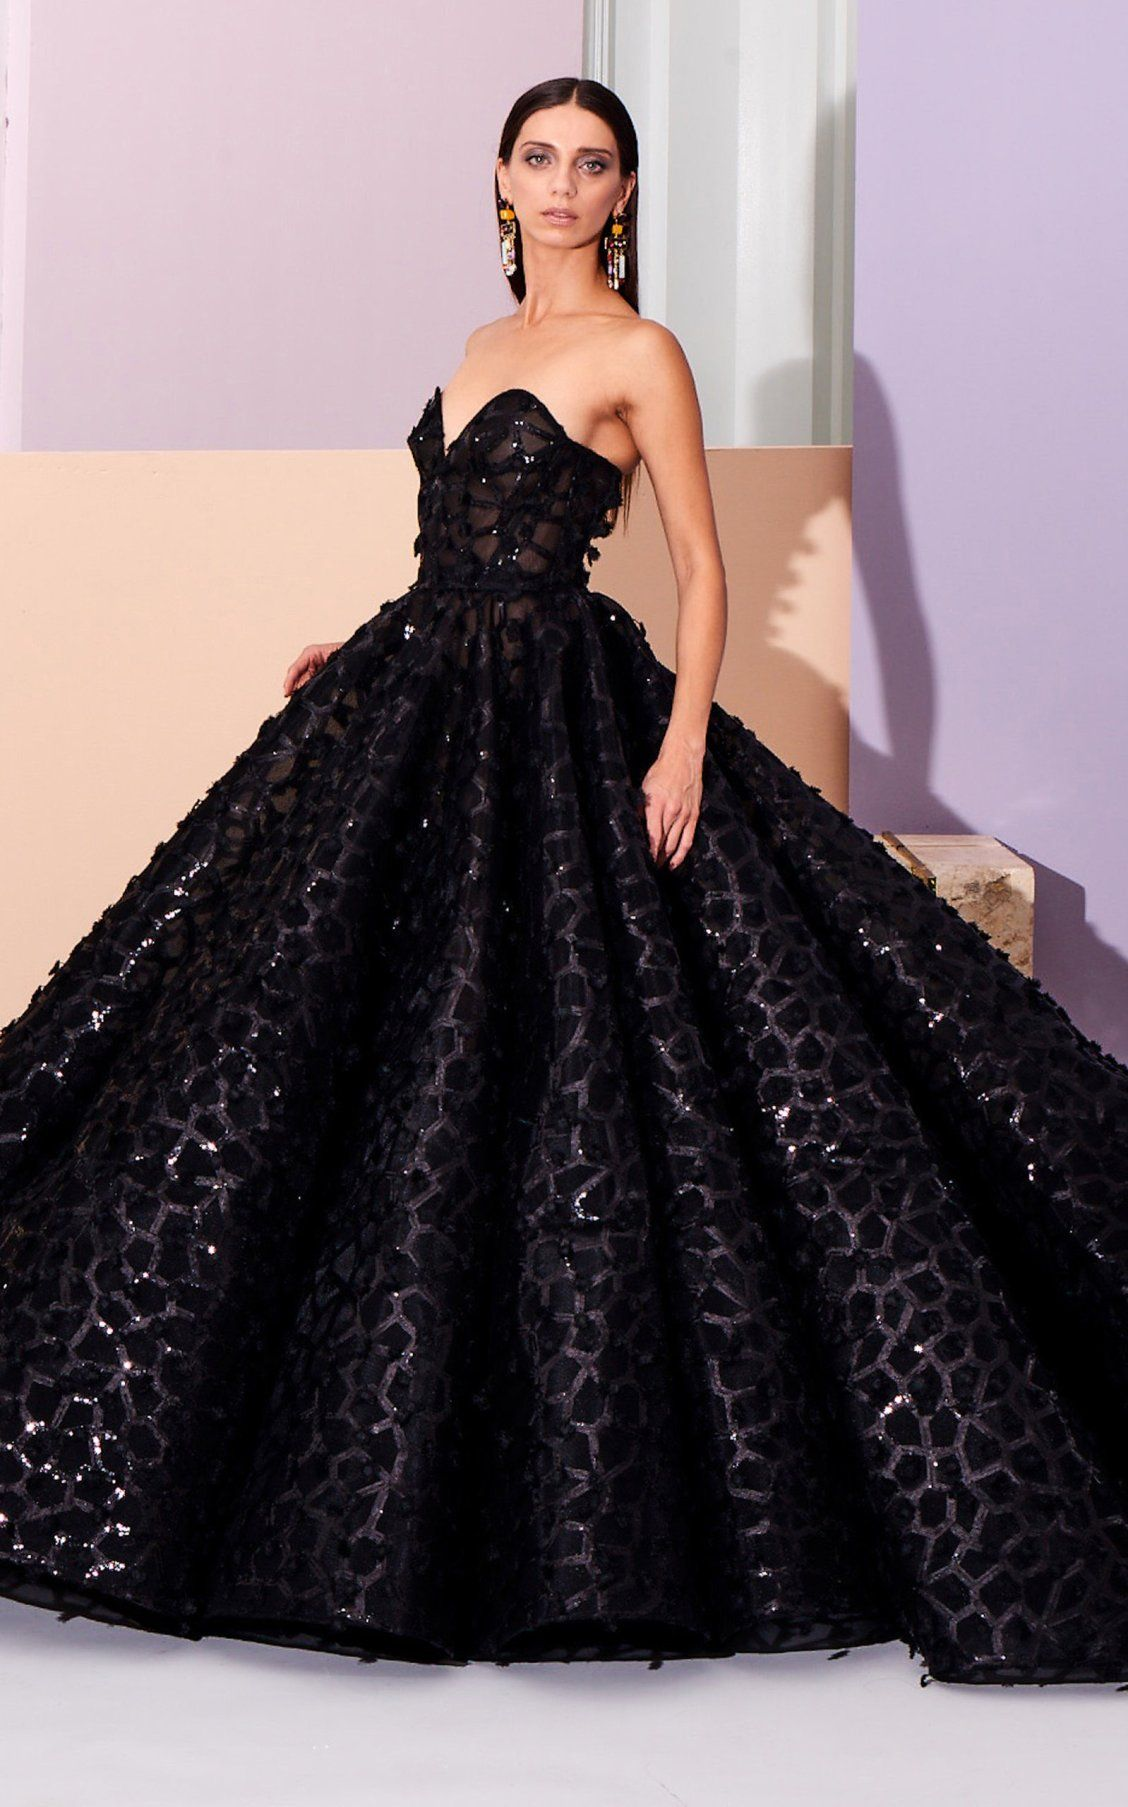 Sequined Embellished Ball Gown By Christian Siriano Pf19 Moda Operandi Ball Dresses Ball Gowns Formal Wear Dresses